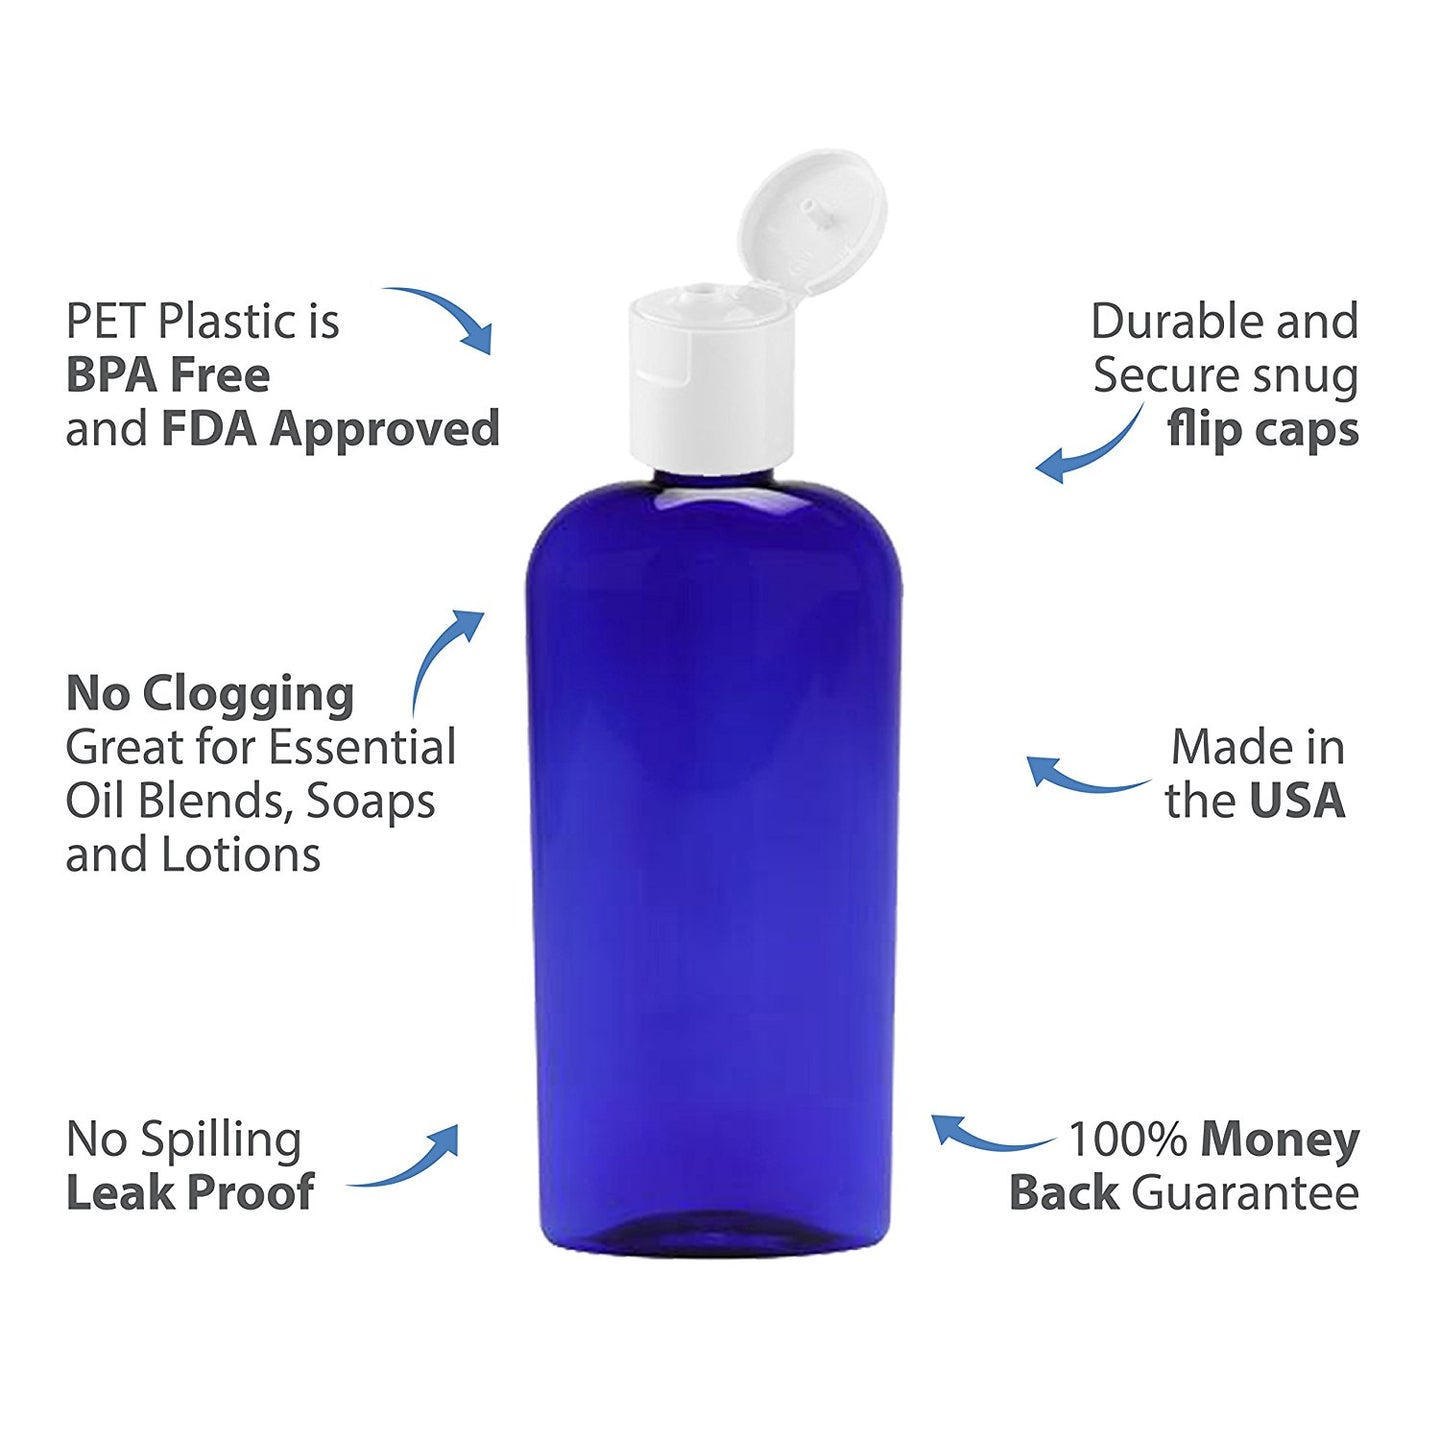 MoYo Natural Labs 8 oz Flip Cap Bottles, Empty Containers for Shampoo or Lotions, BPA Free PET Plastic Squeezable Toiletry/Cosmetic Bottles (6 pack, Cobalt Blue)